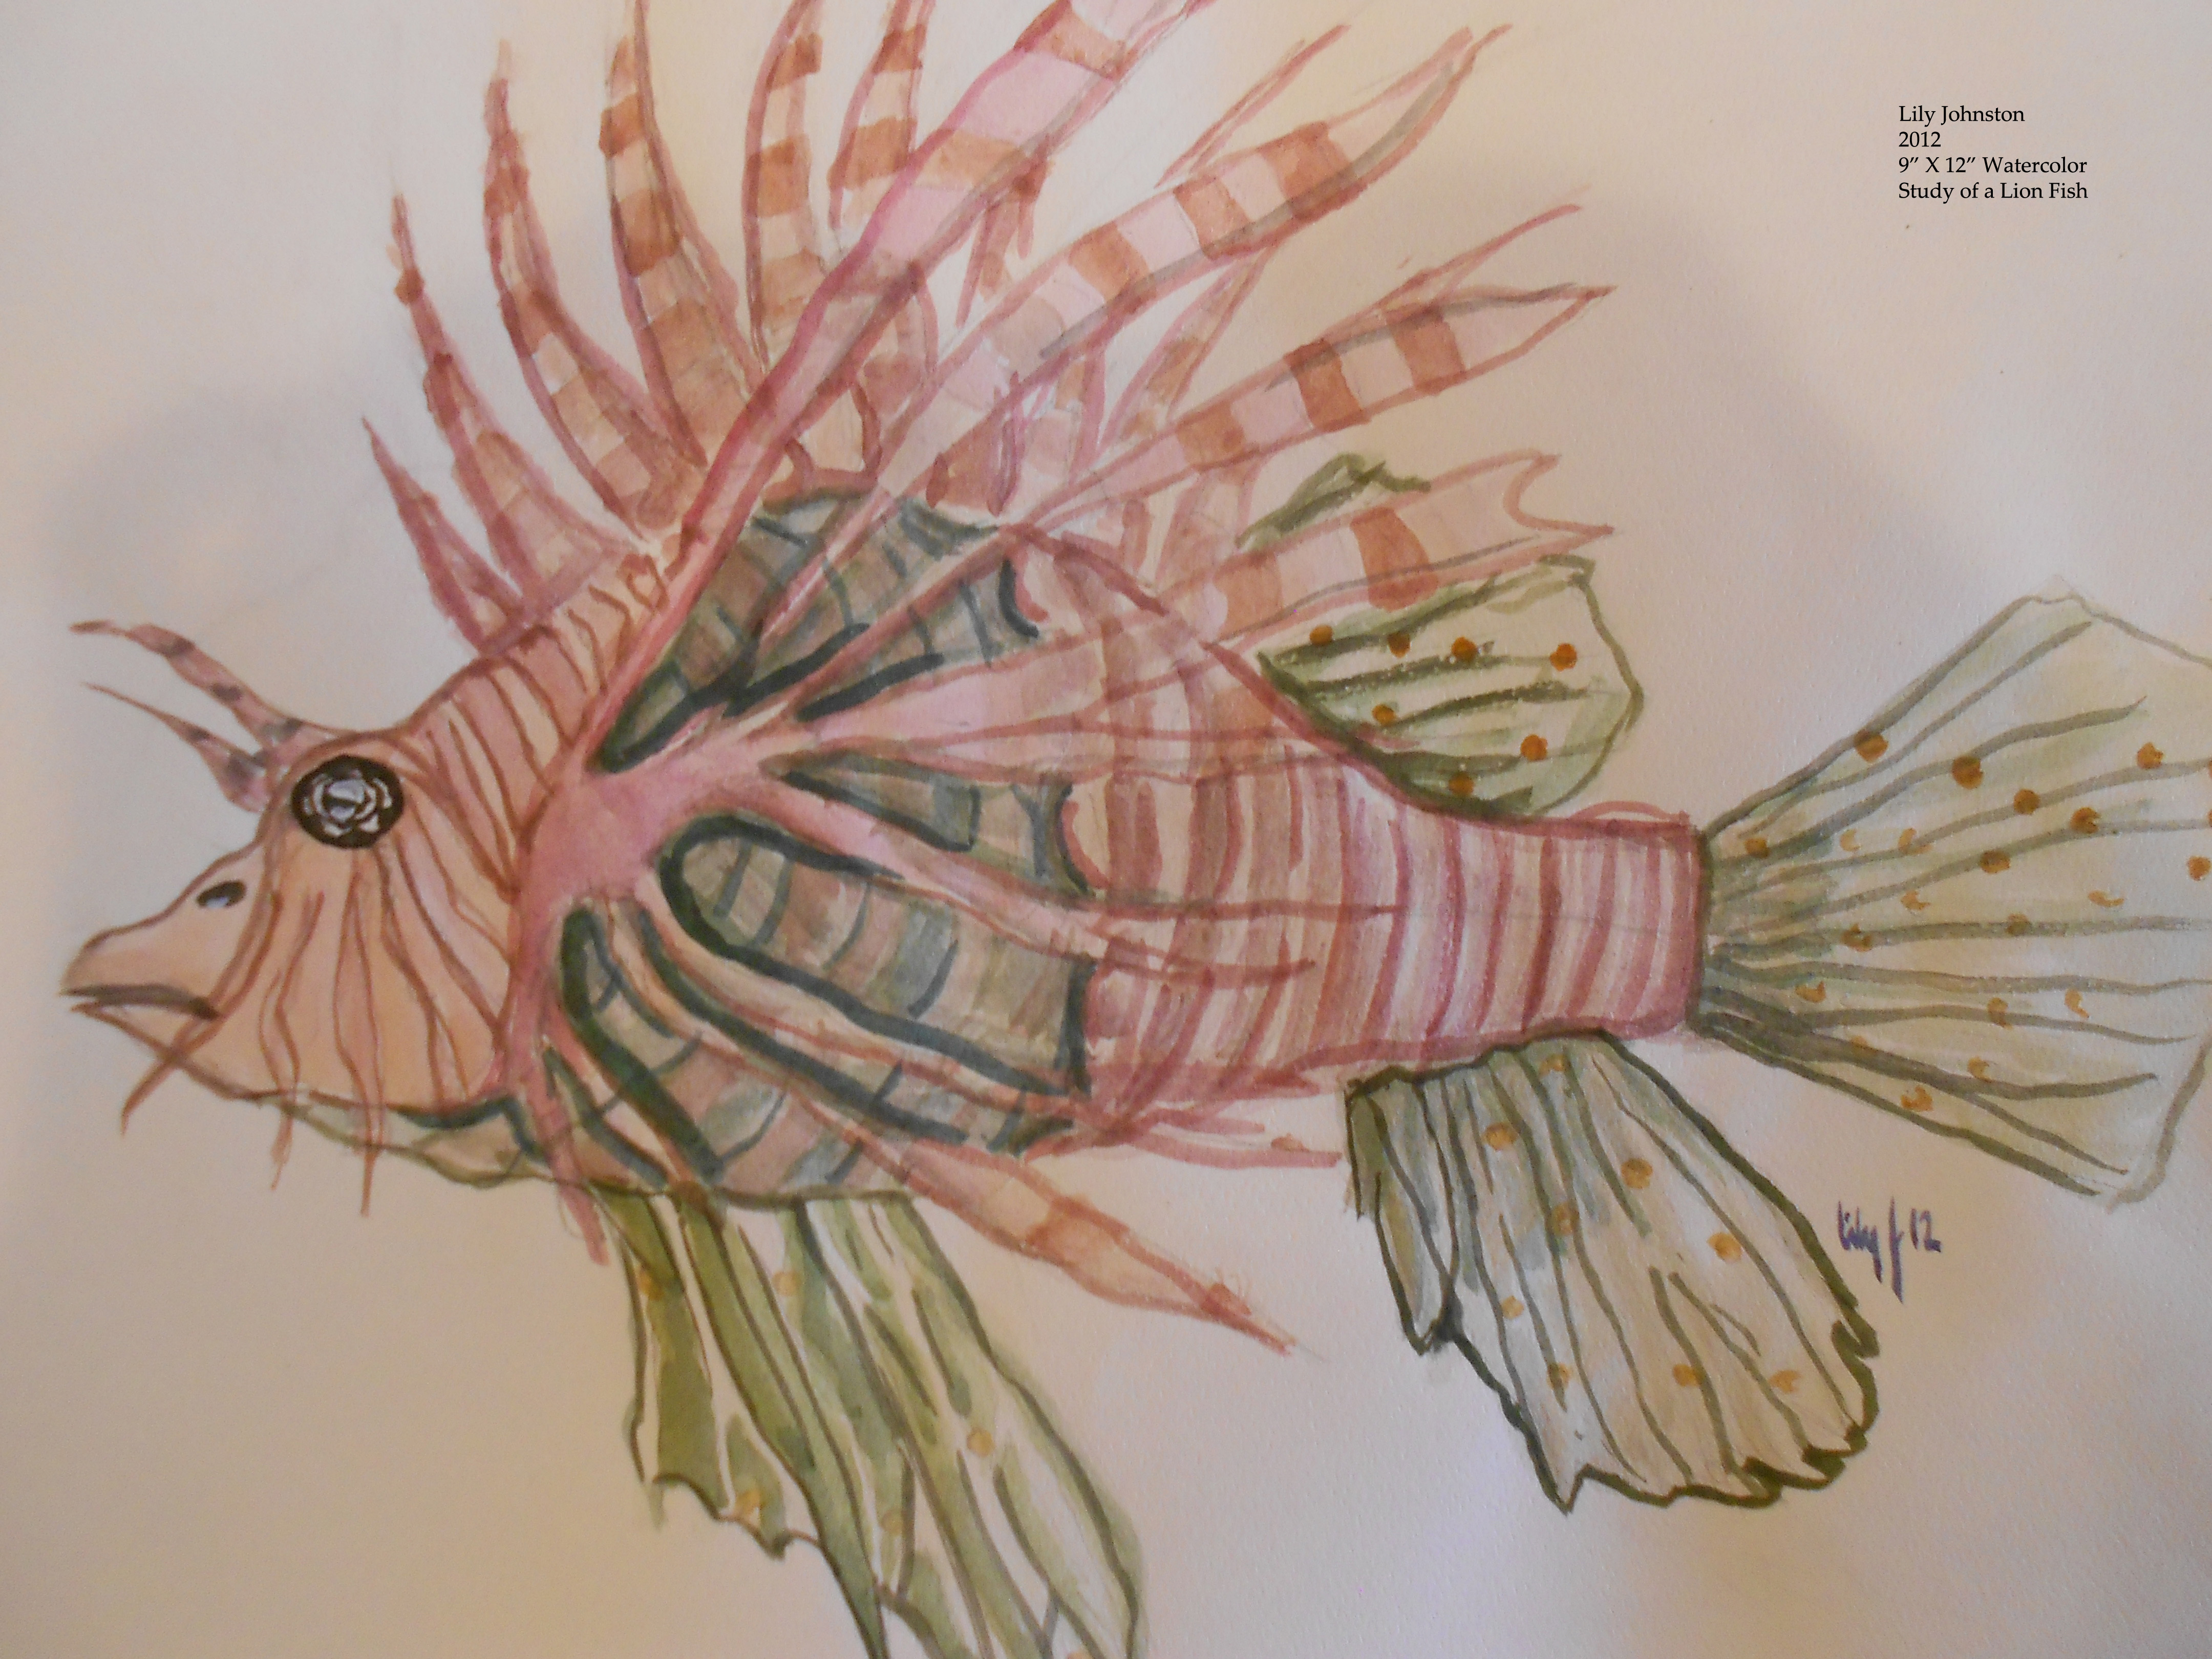 Lily's Lion Fish